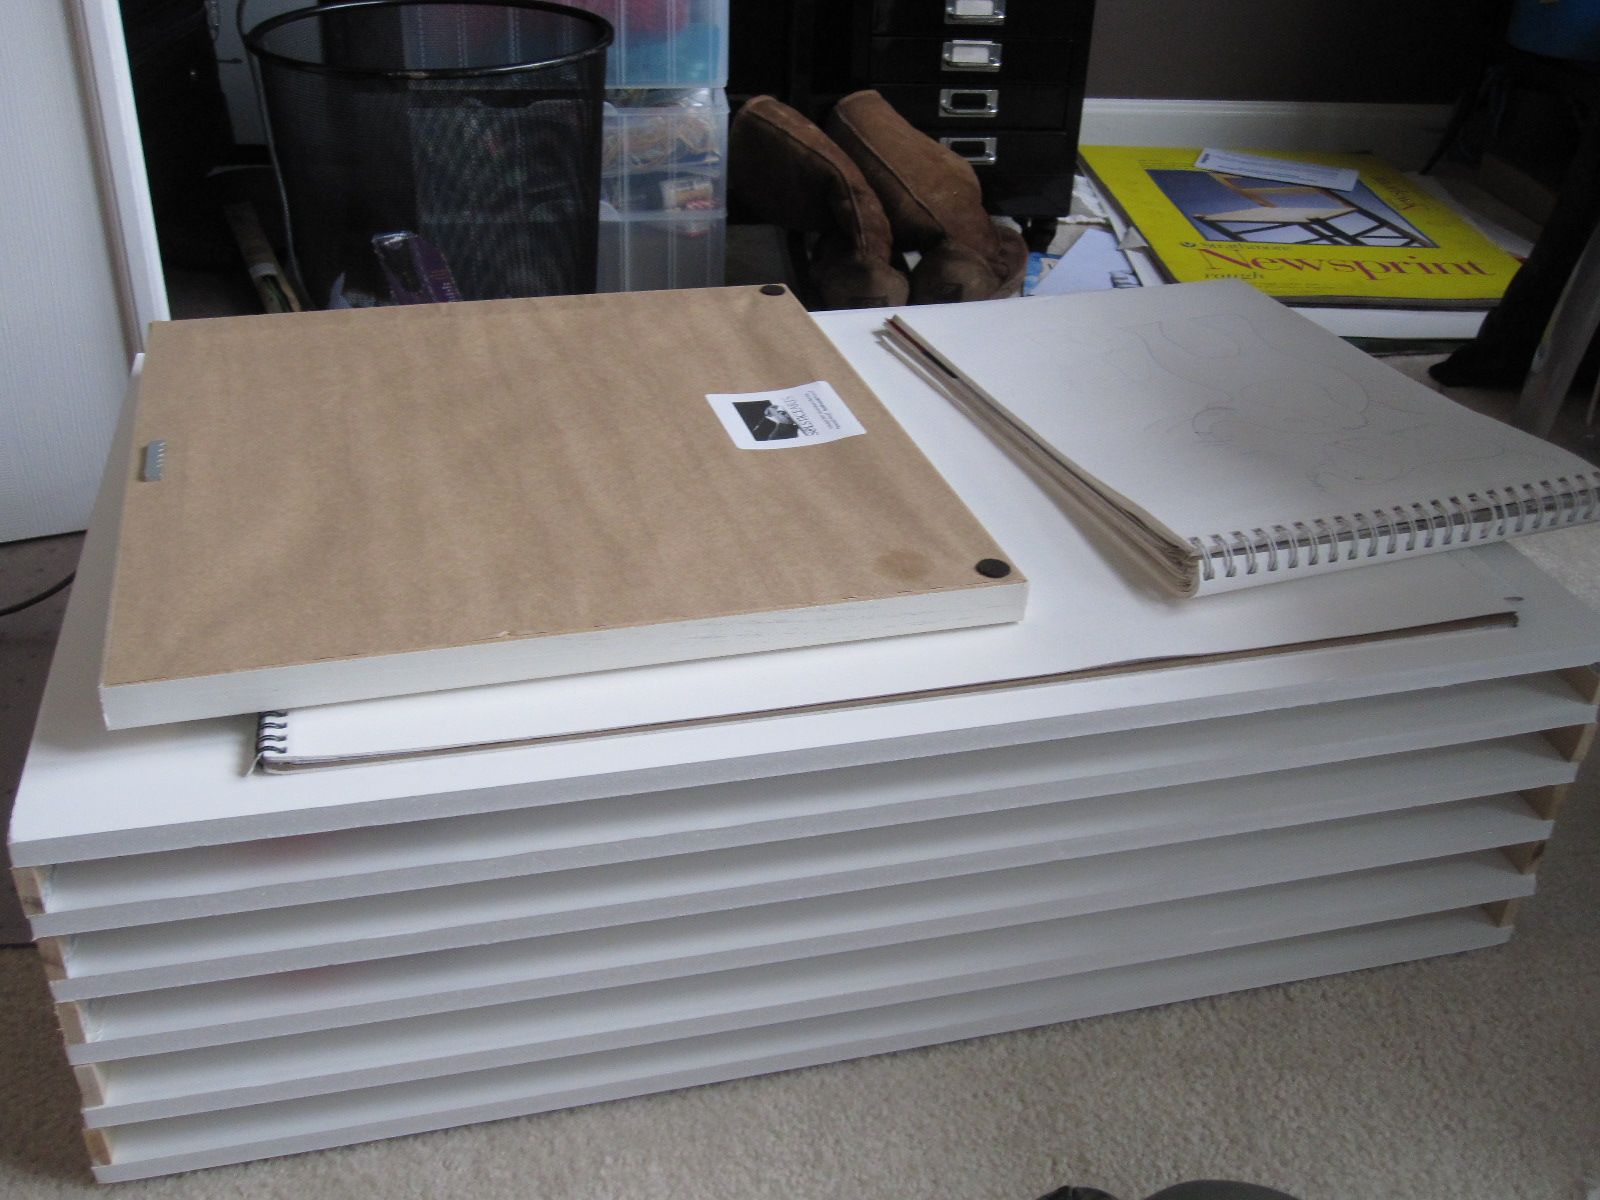 Flat Files For Cheap!